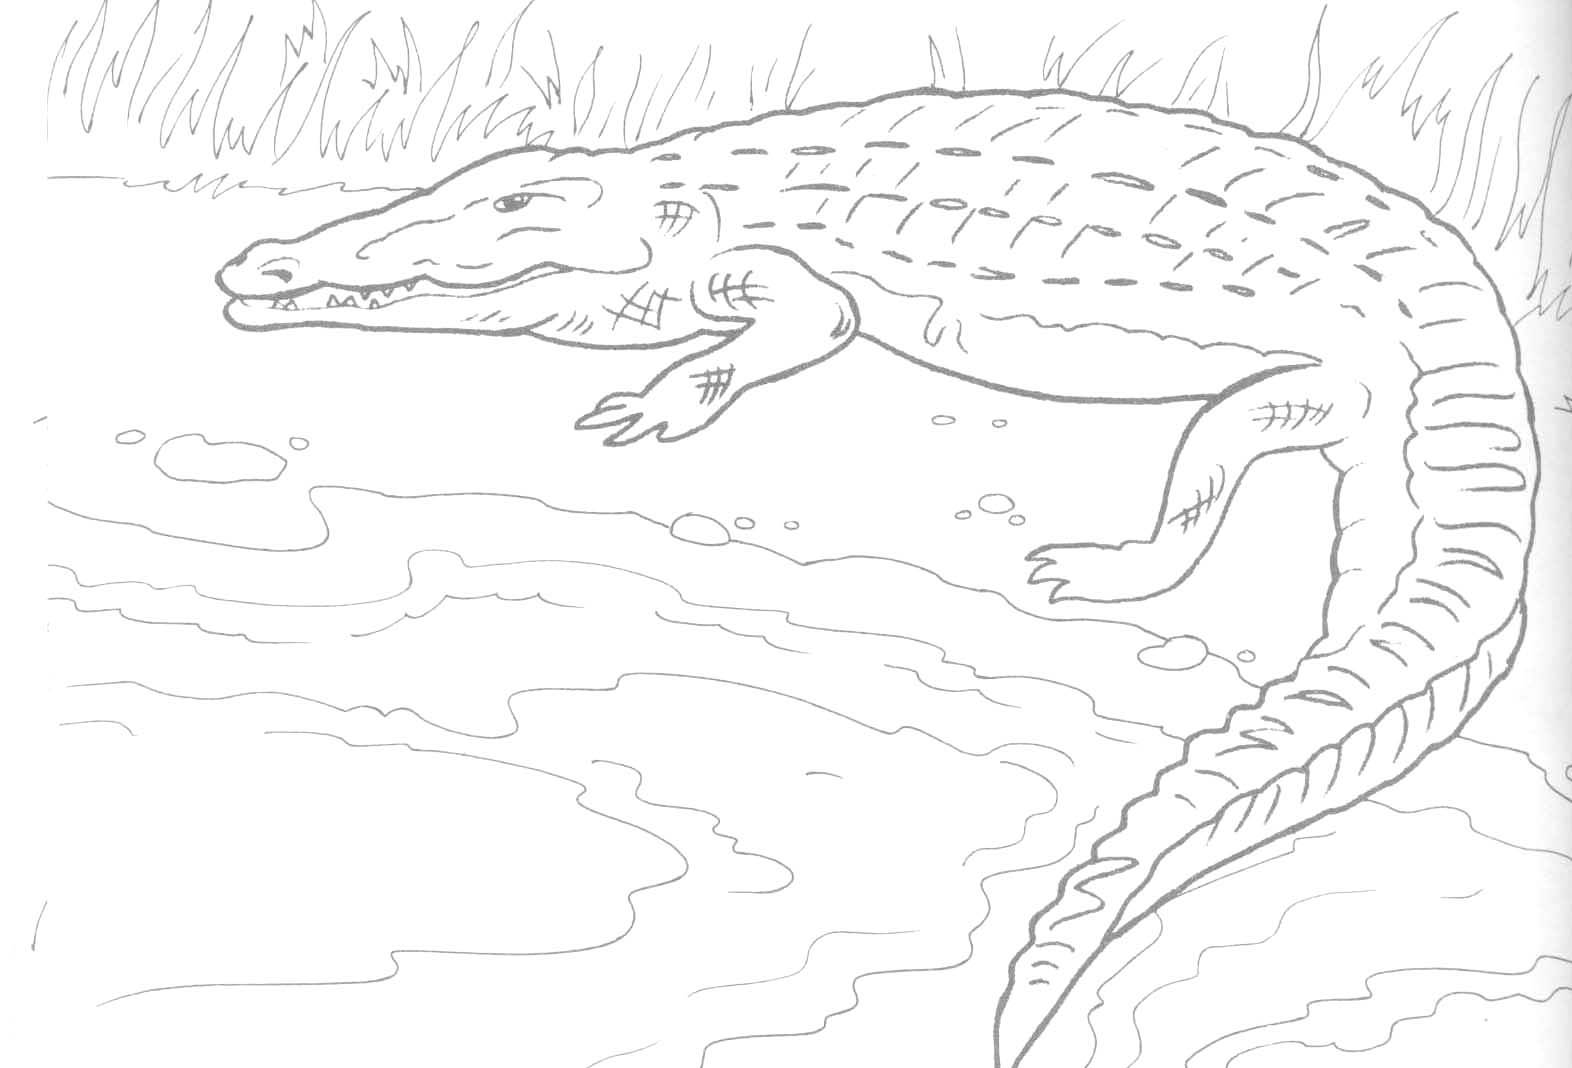 Alligator Coloring Pages | Coloring pages for kids, Coloring pages ... | 1068x1572